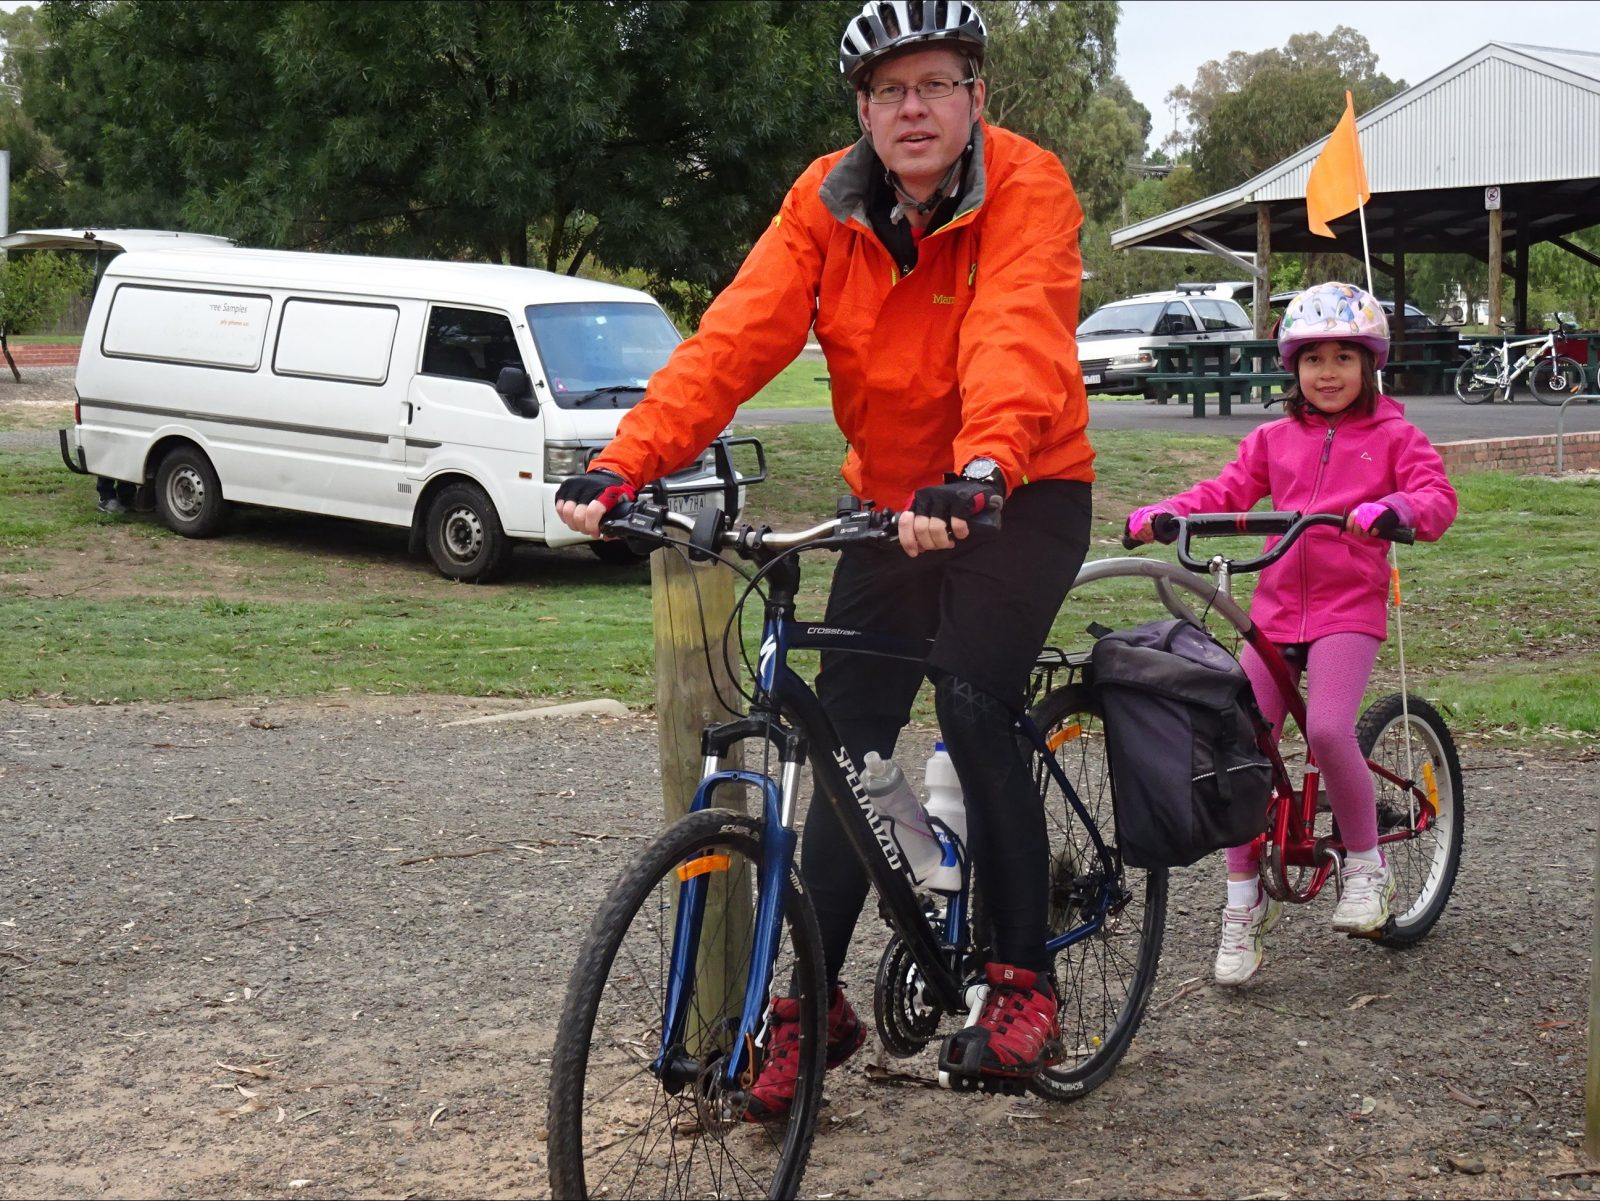 Dad and daughter starting Cycle Dindi at Yea